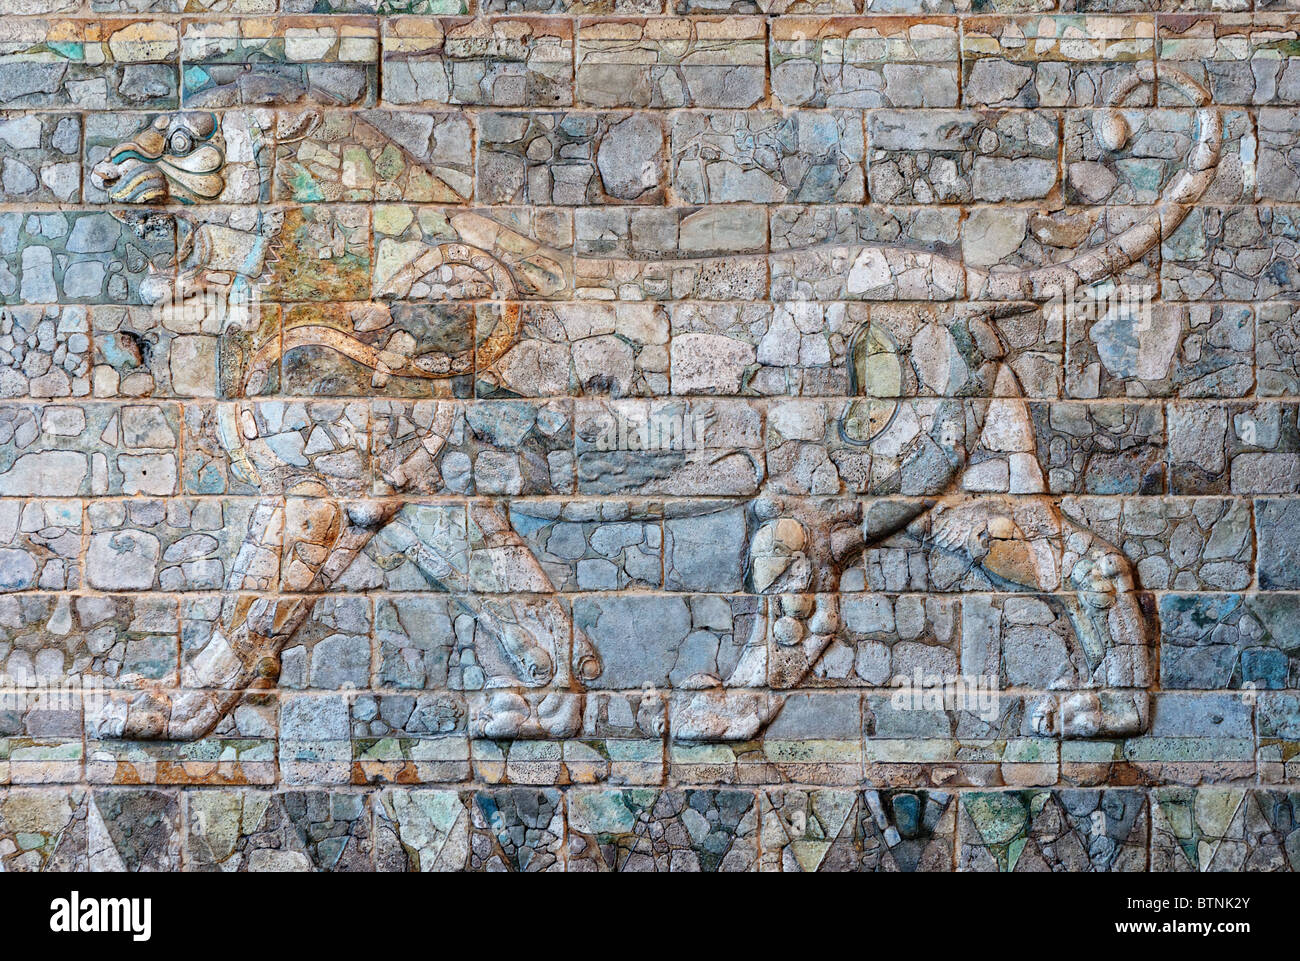 Frieze of Lions, from the reign of Darius I, ca 510 BC from his palace in Susa, Louvre Museum Paris - Stock Image